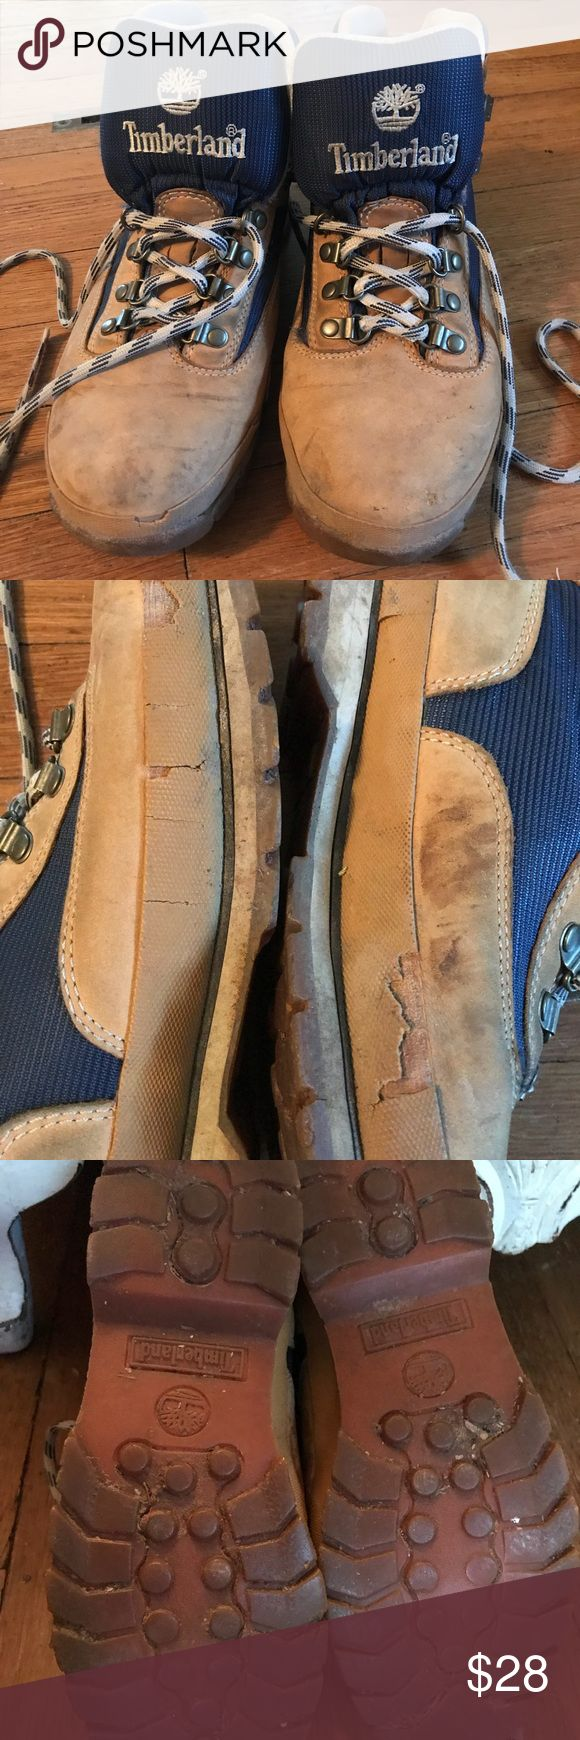 Timberland hiking boots Size 9 leather boots, moderately used, some cosmetic damage but good soles with a lot of life remaining. Timberland Shoes Lace Up Boots